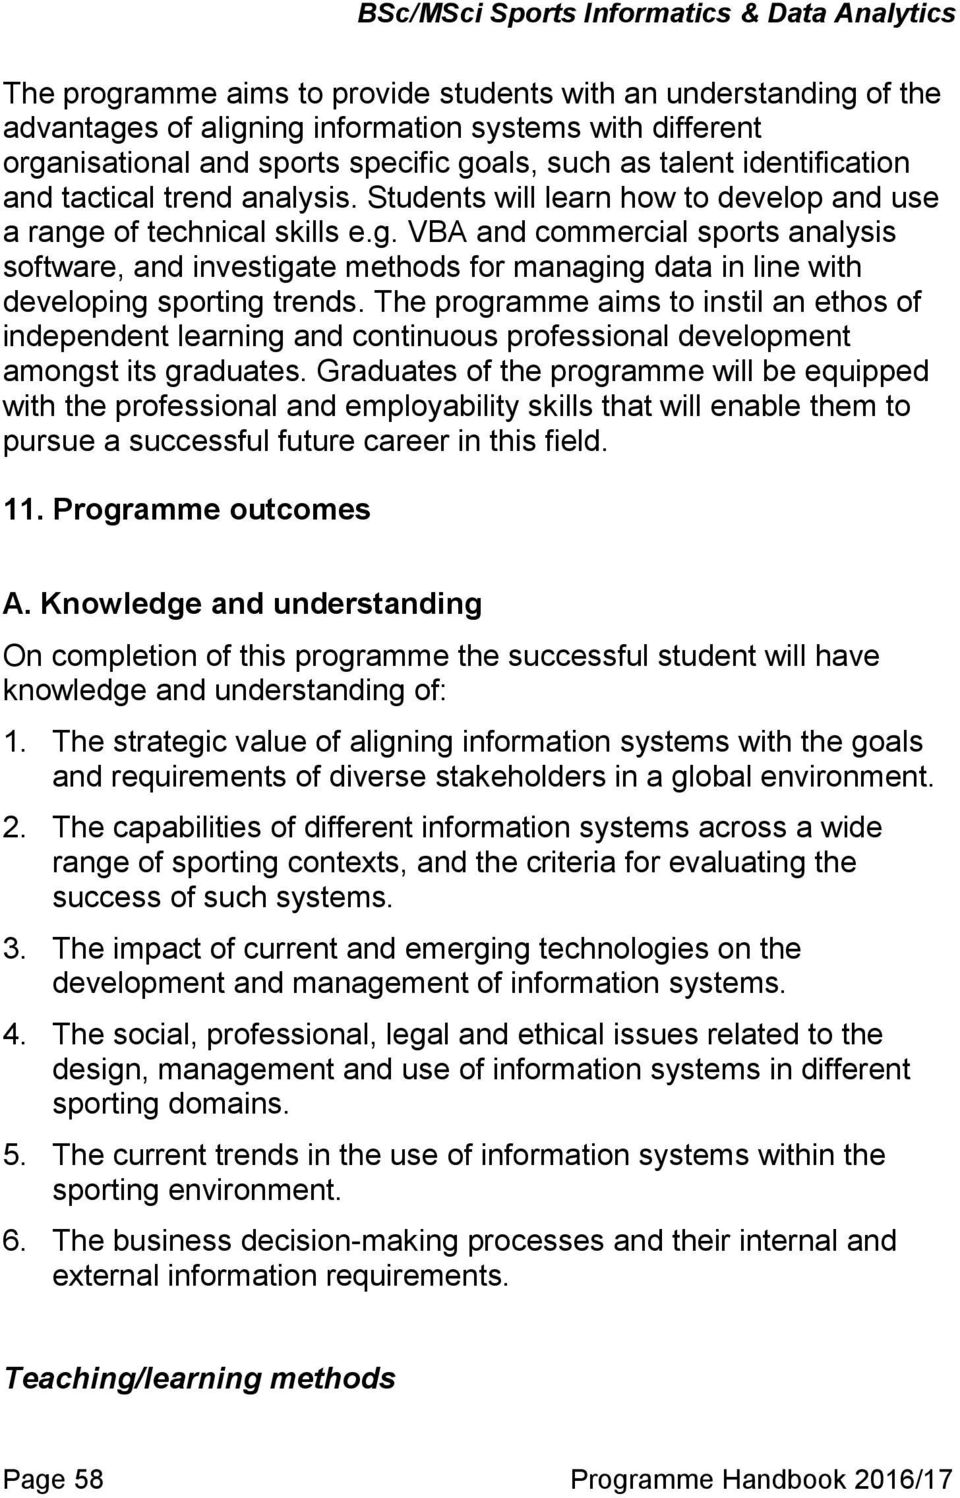 of technical skills e.g. VBA and commercial sports analysis software, and investigate methods for managing data in line with developing sporting trends.